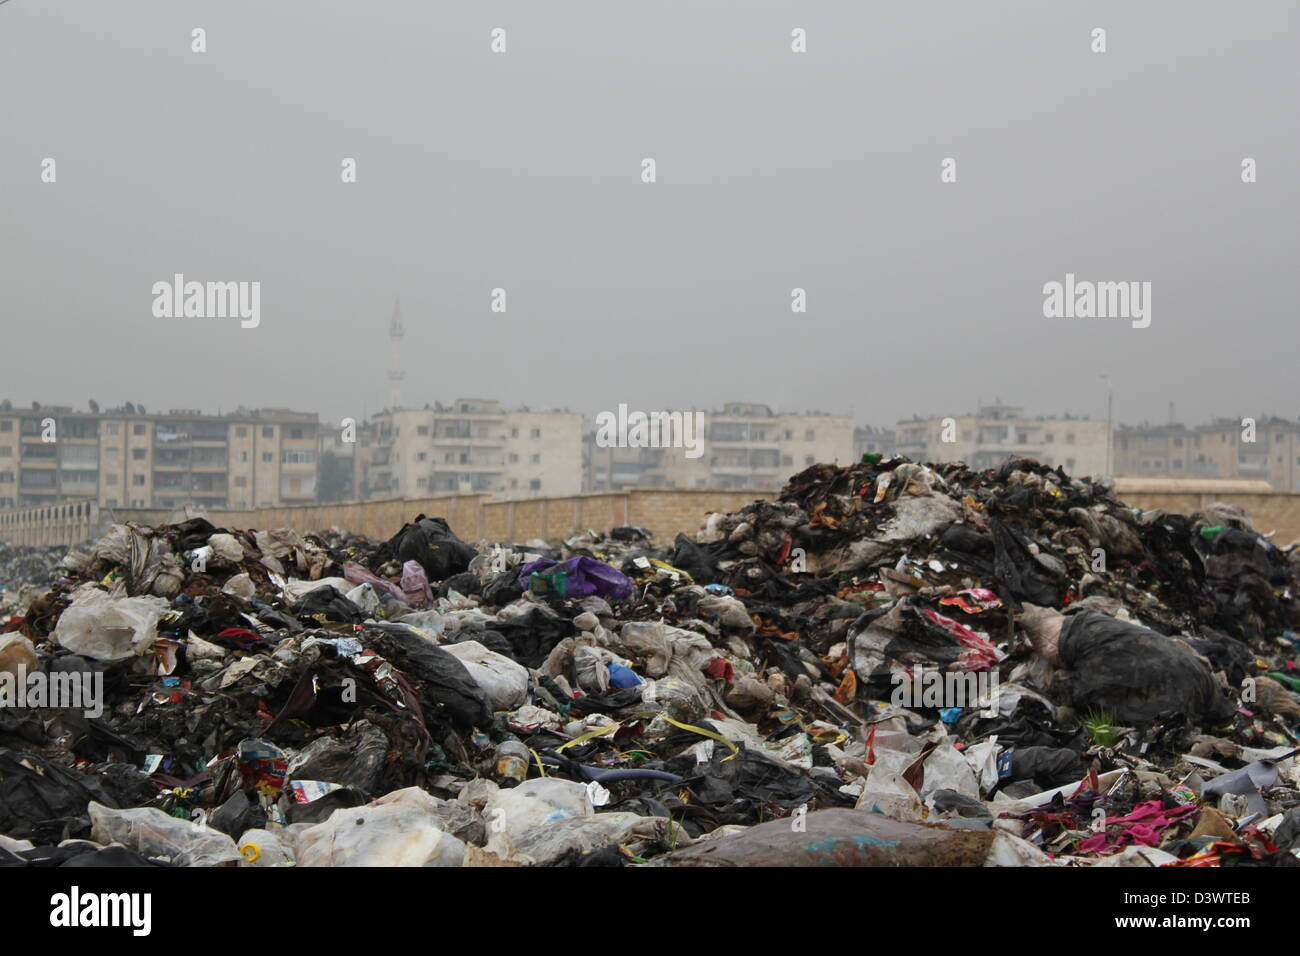 Fetid rubbish piled high in Aleppo, Syria. Stock Photo